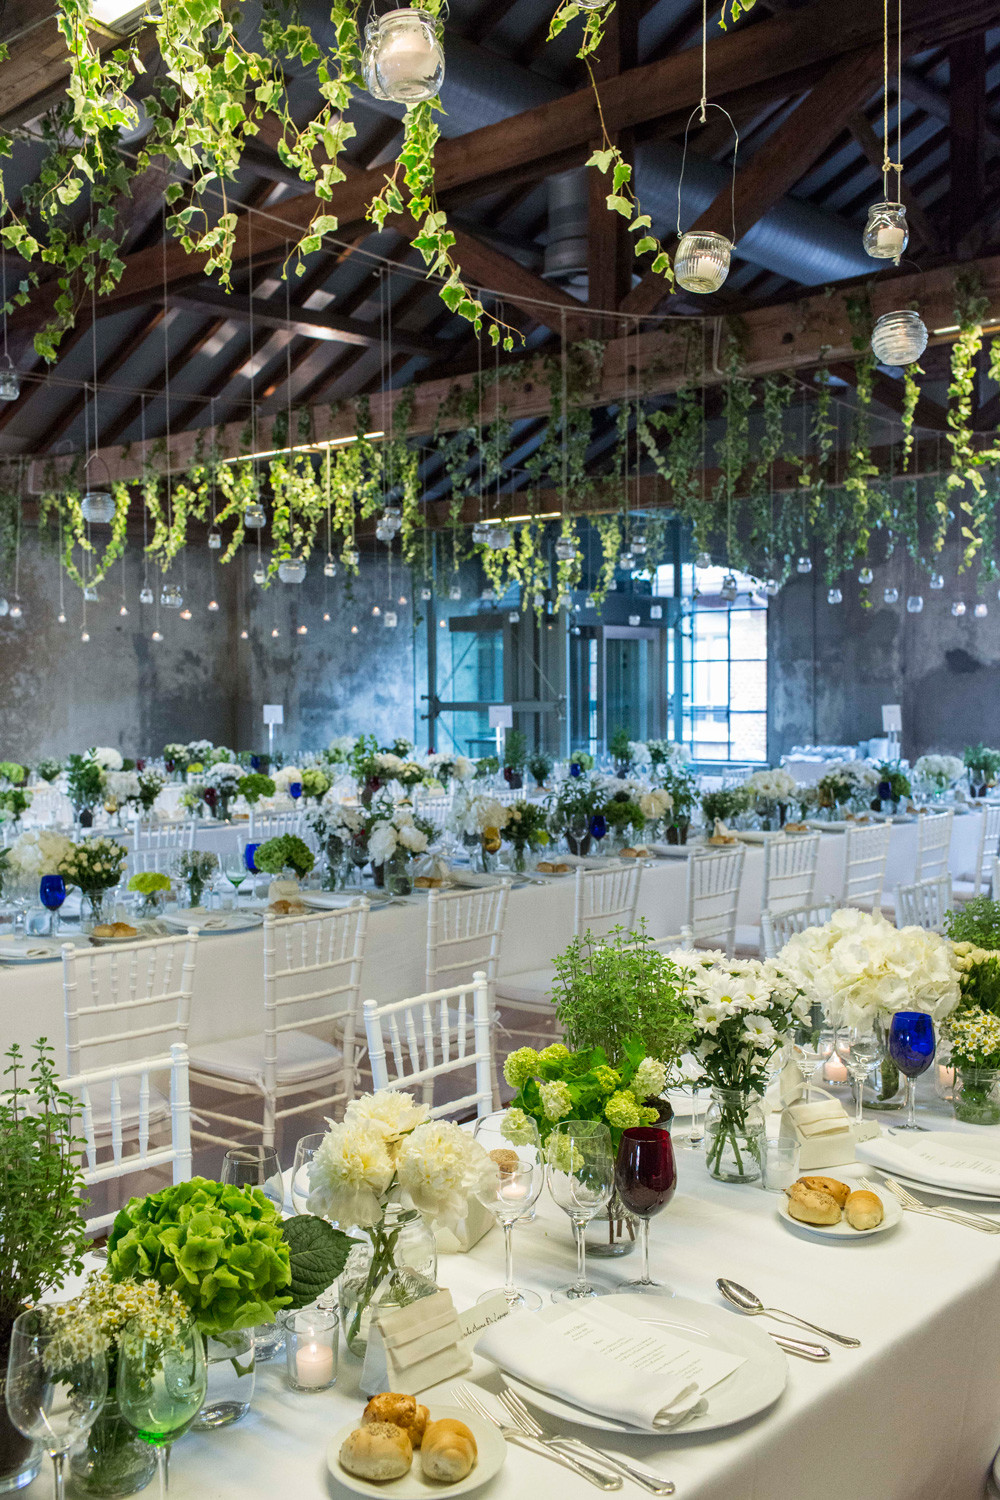 Arrangement and Outfitting for wedding receptions and events